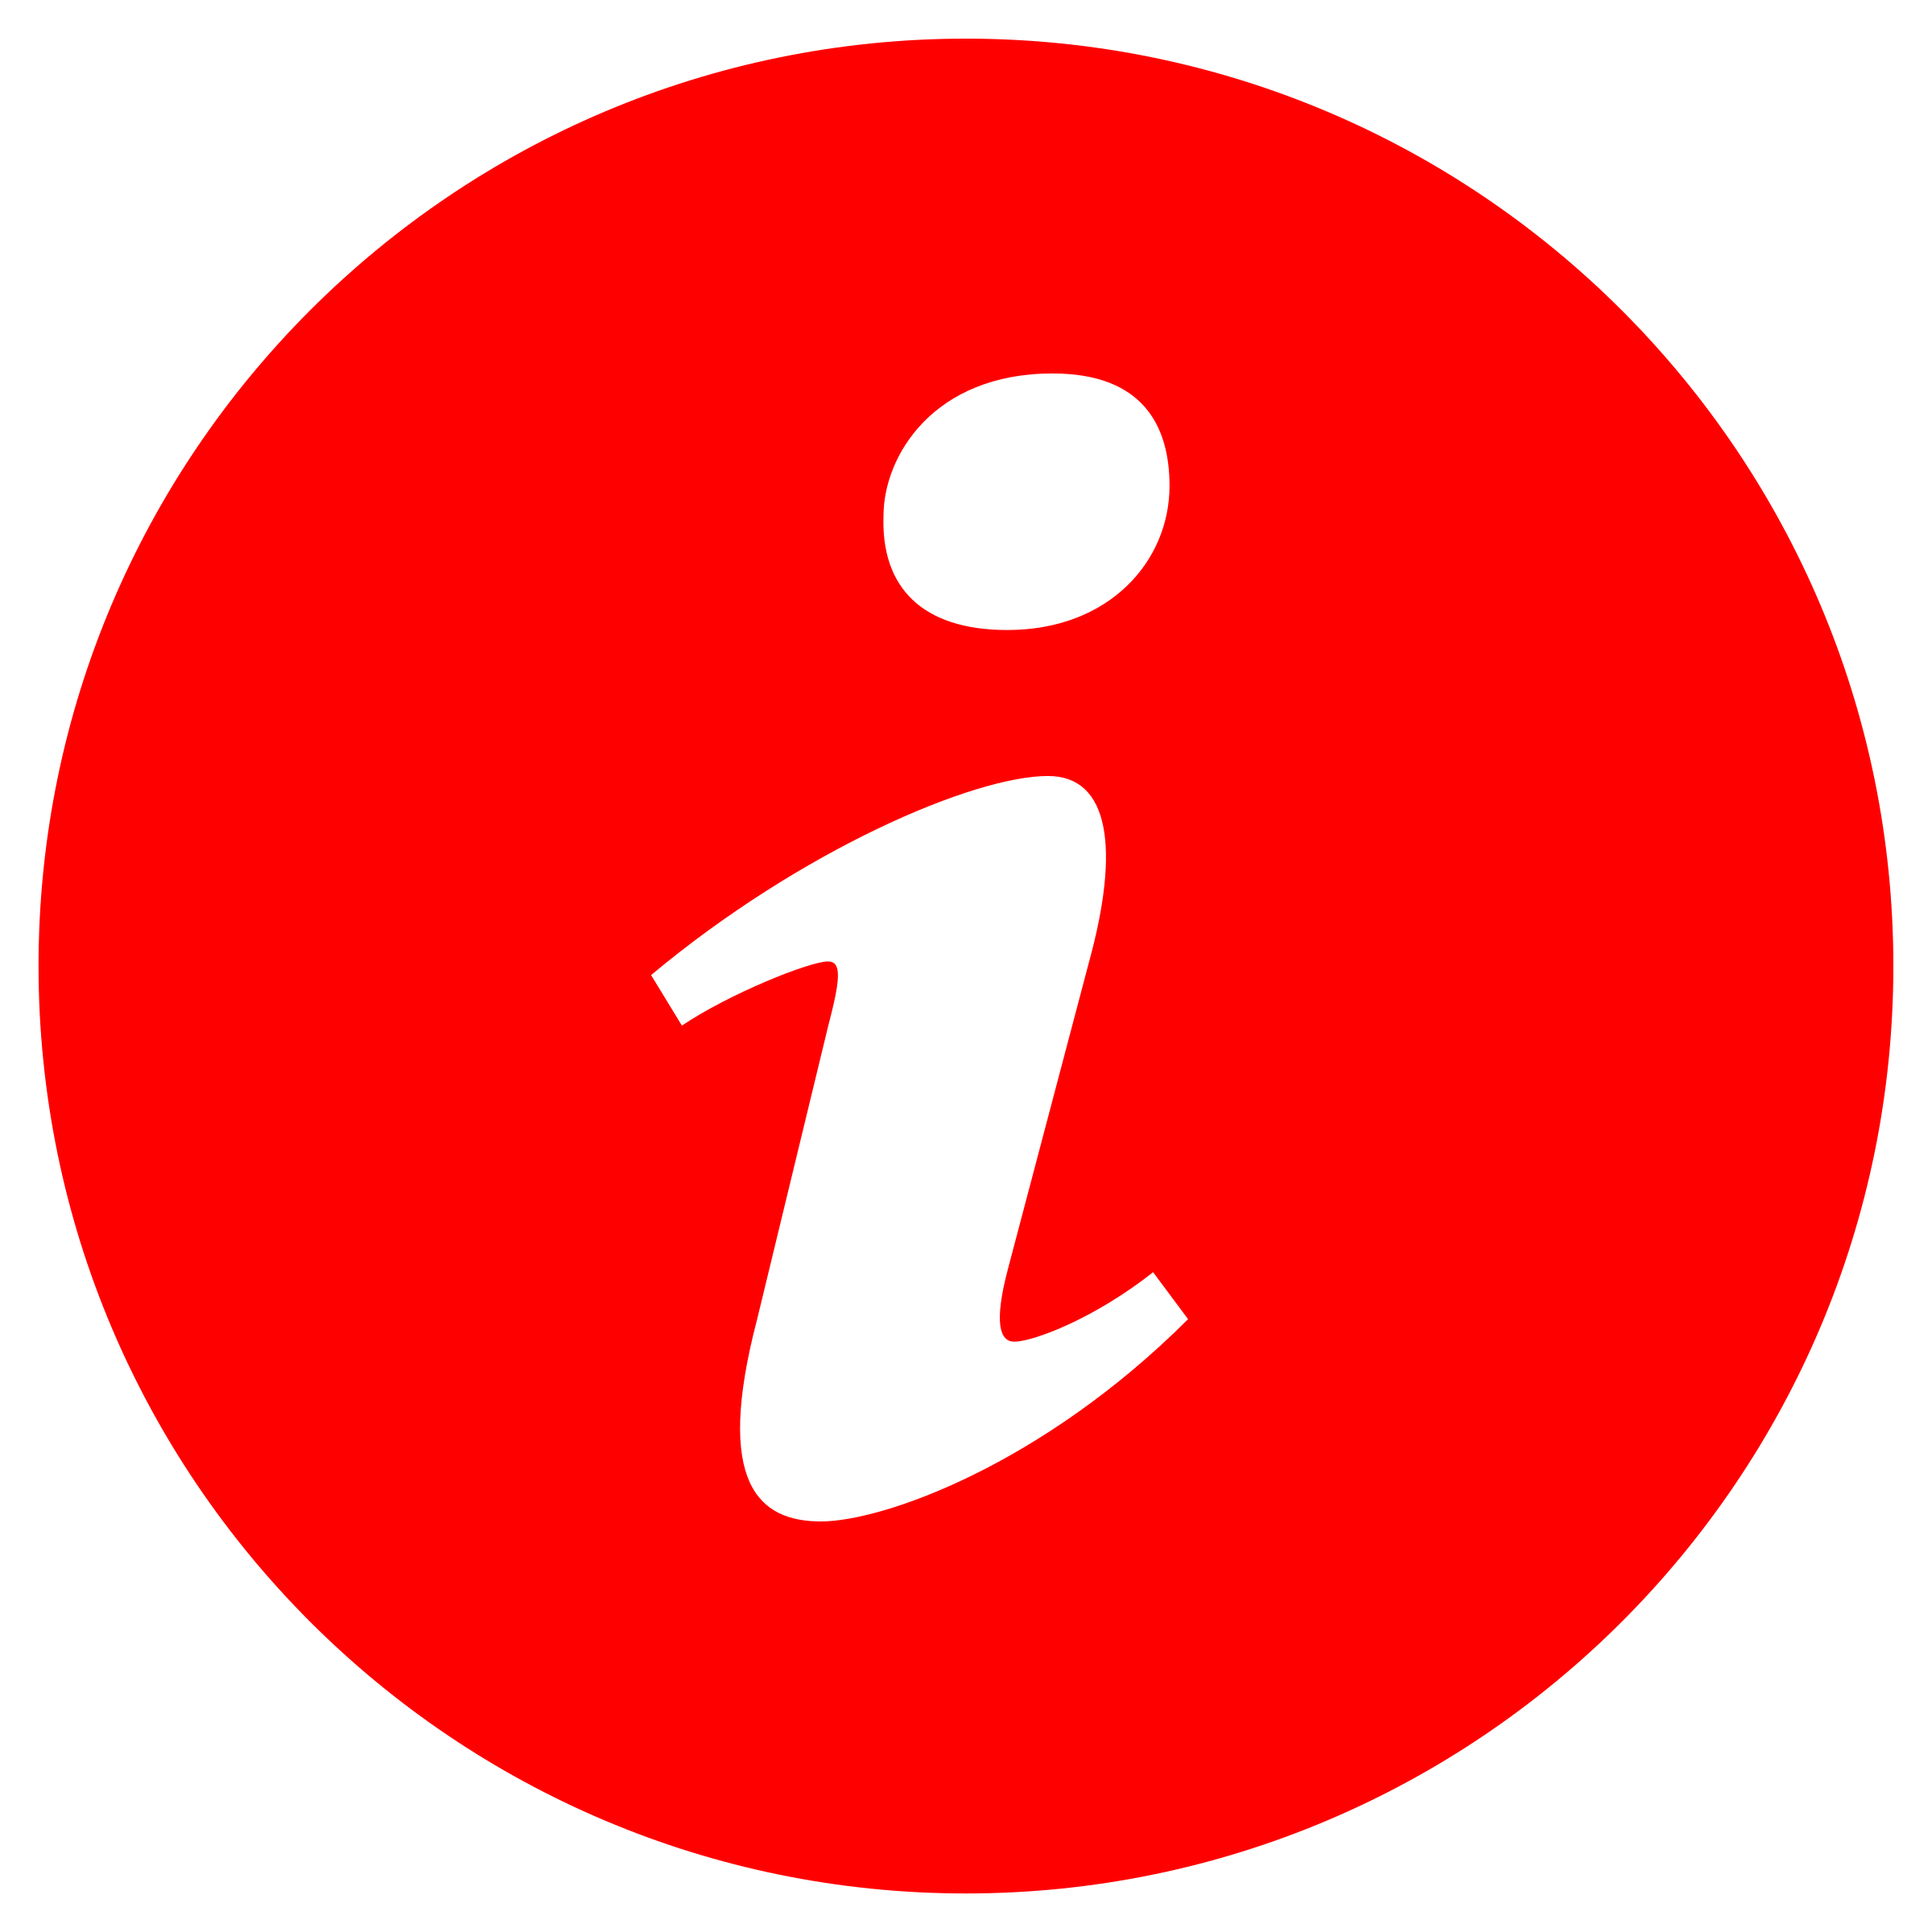 Info Symbol in Circle by algotruneman